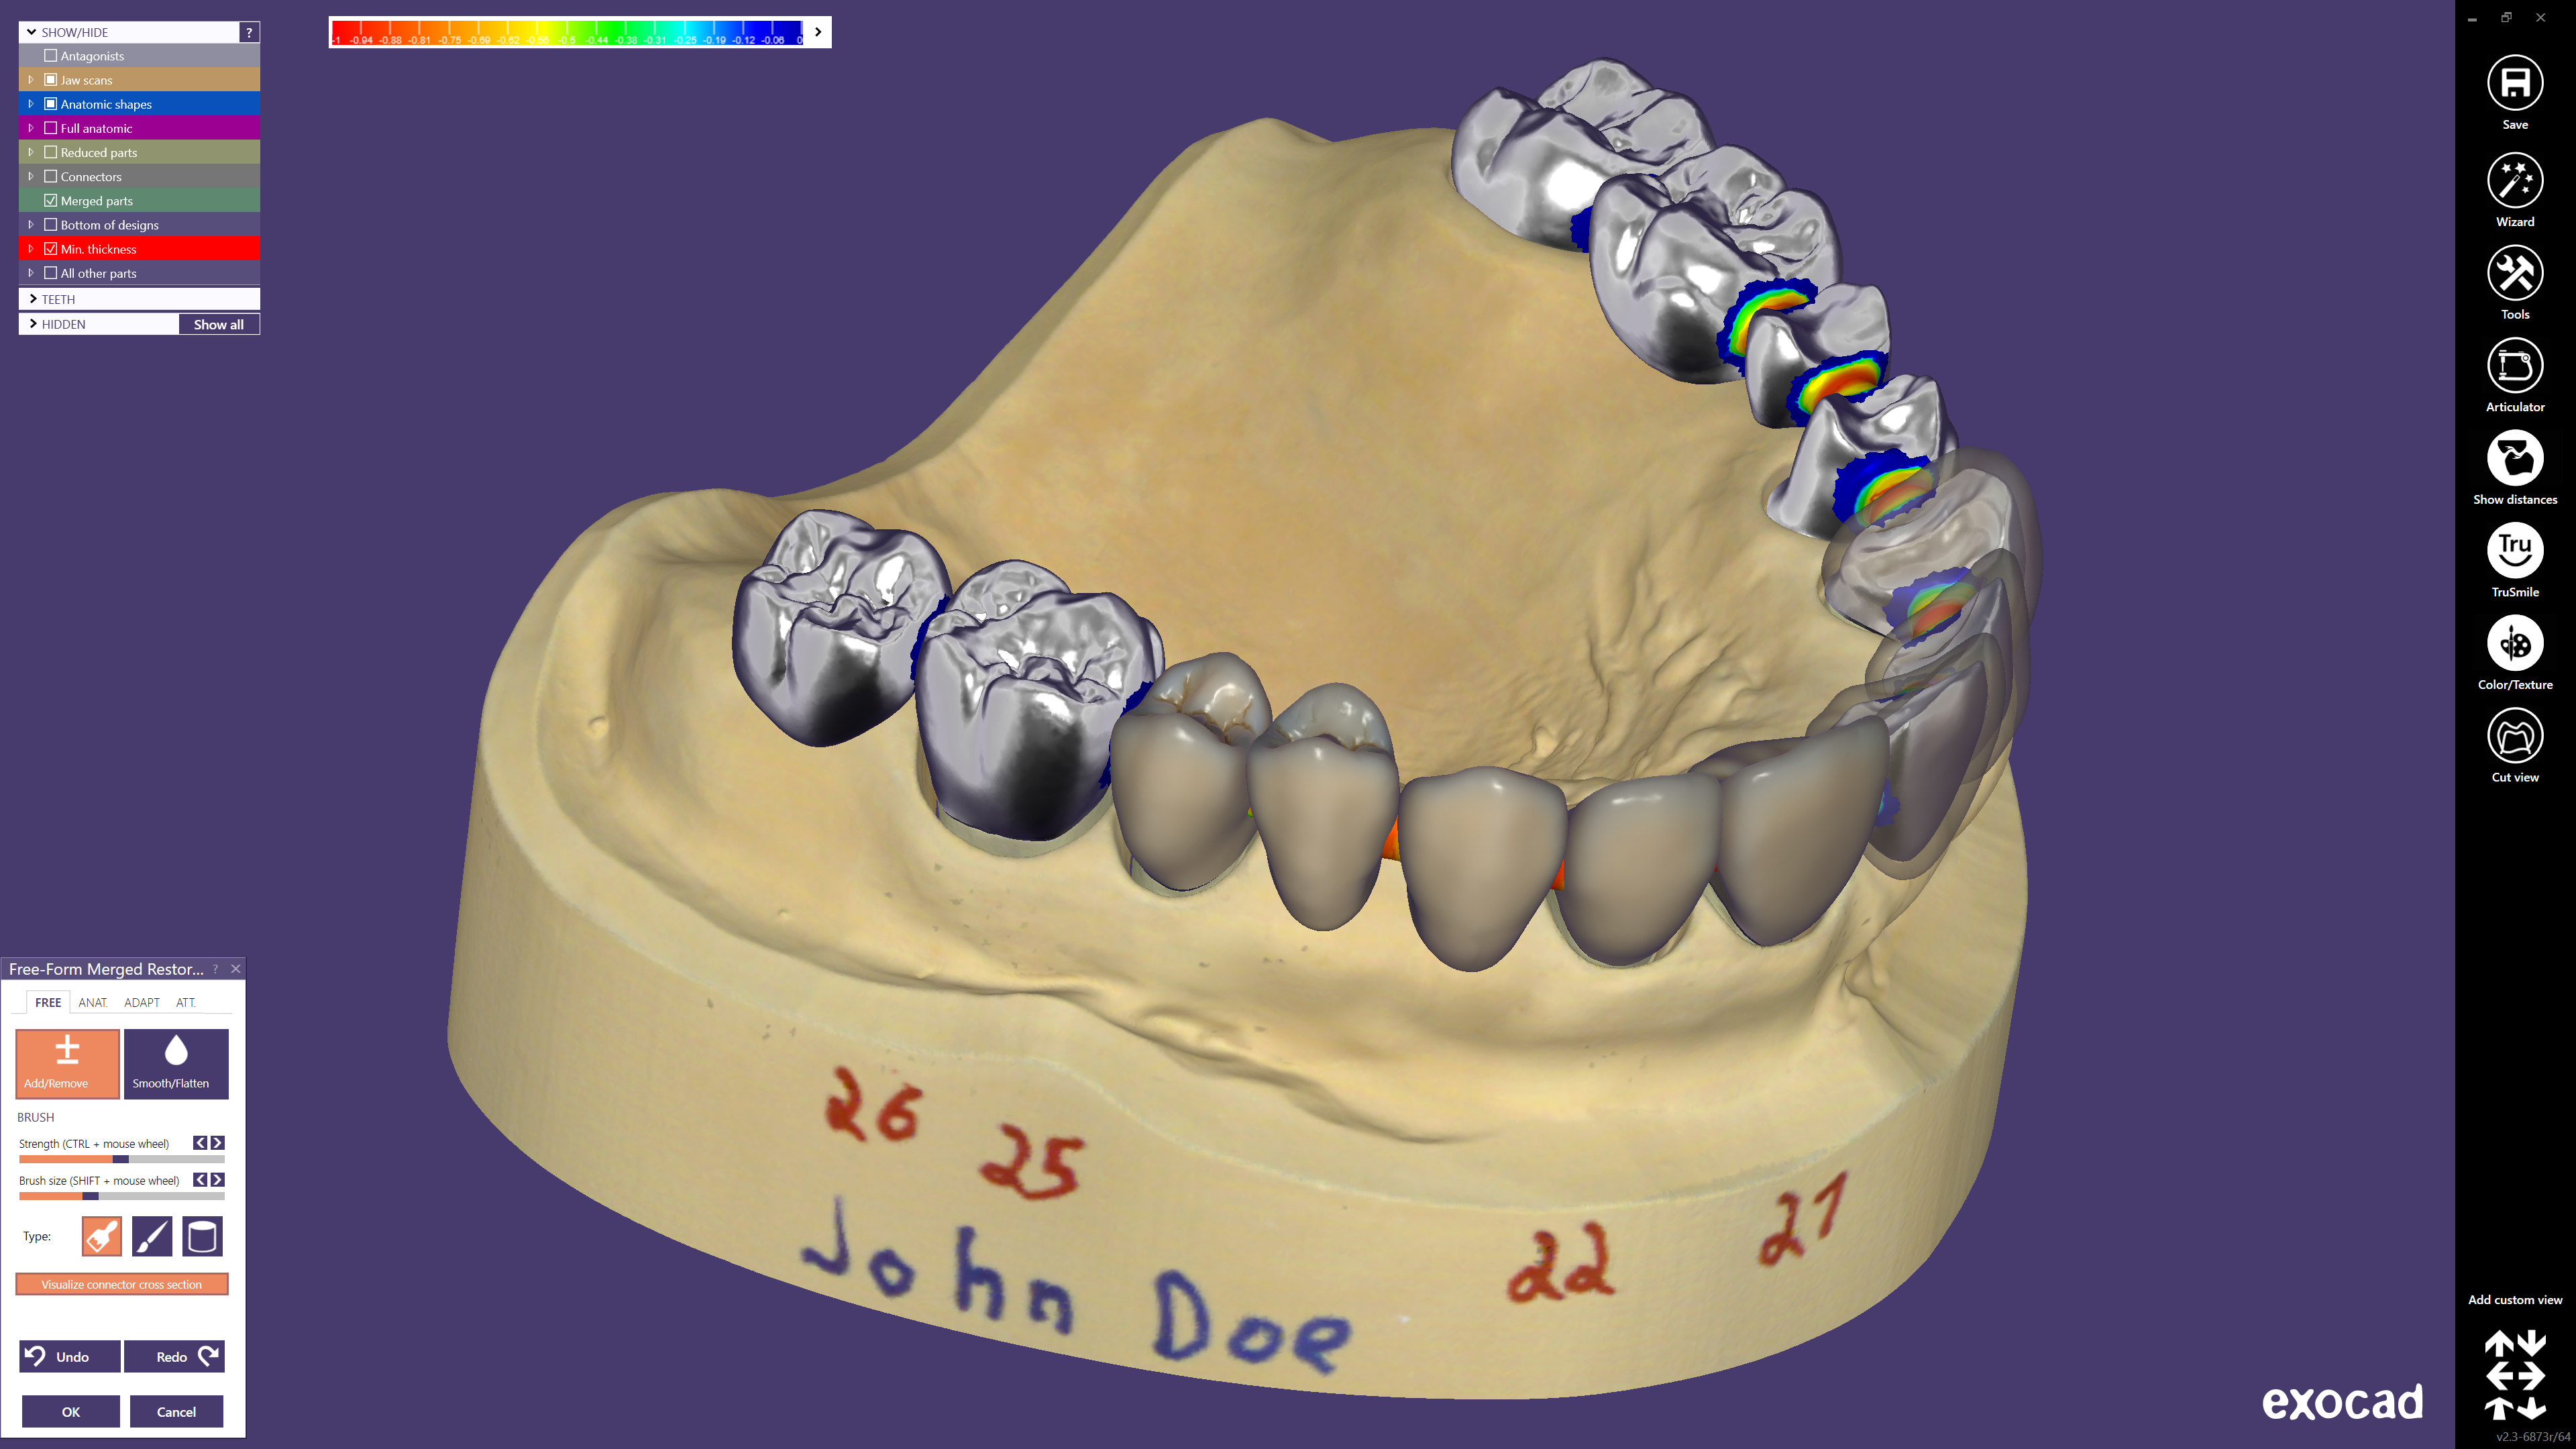 exocad-DentalCAD-Page-05-Preview